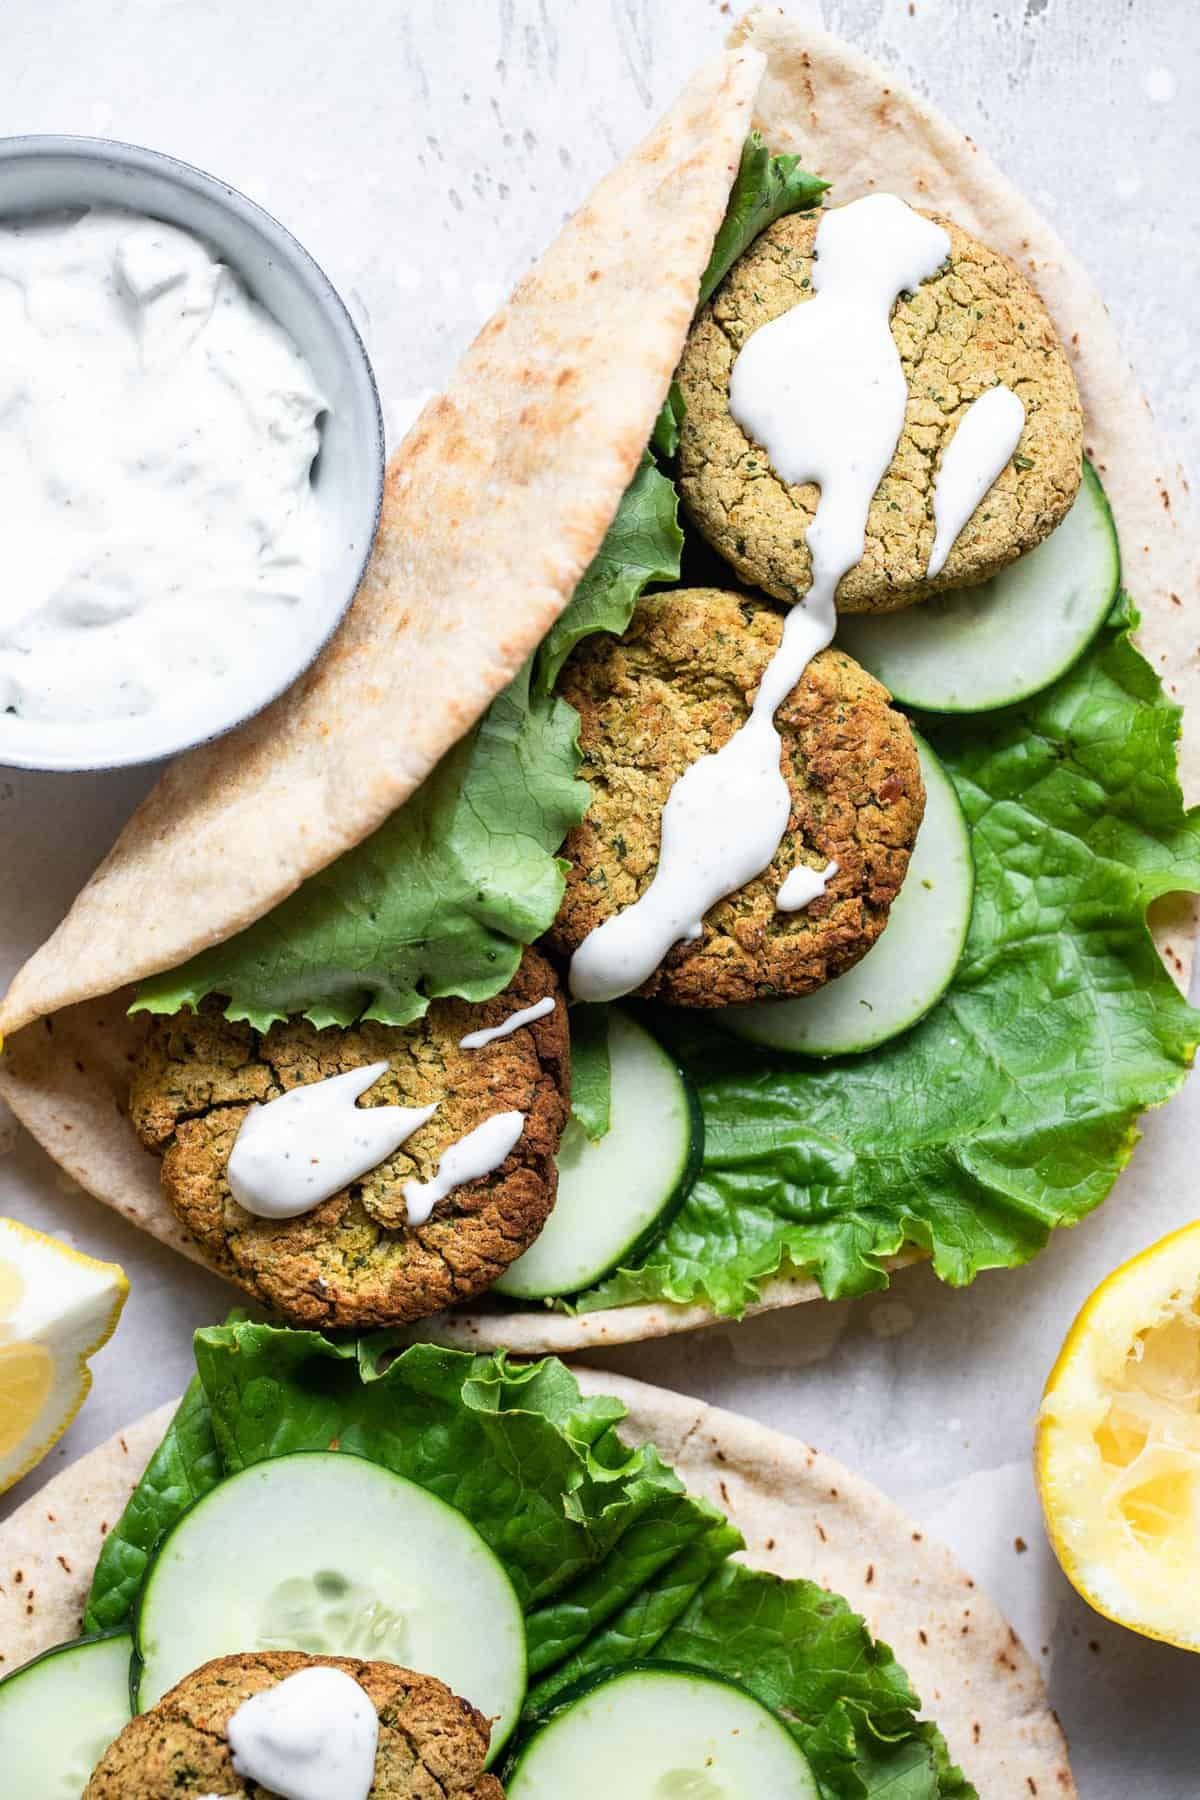 baked falafel in a pita bread with yogurt sauce